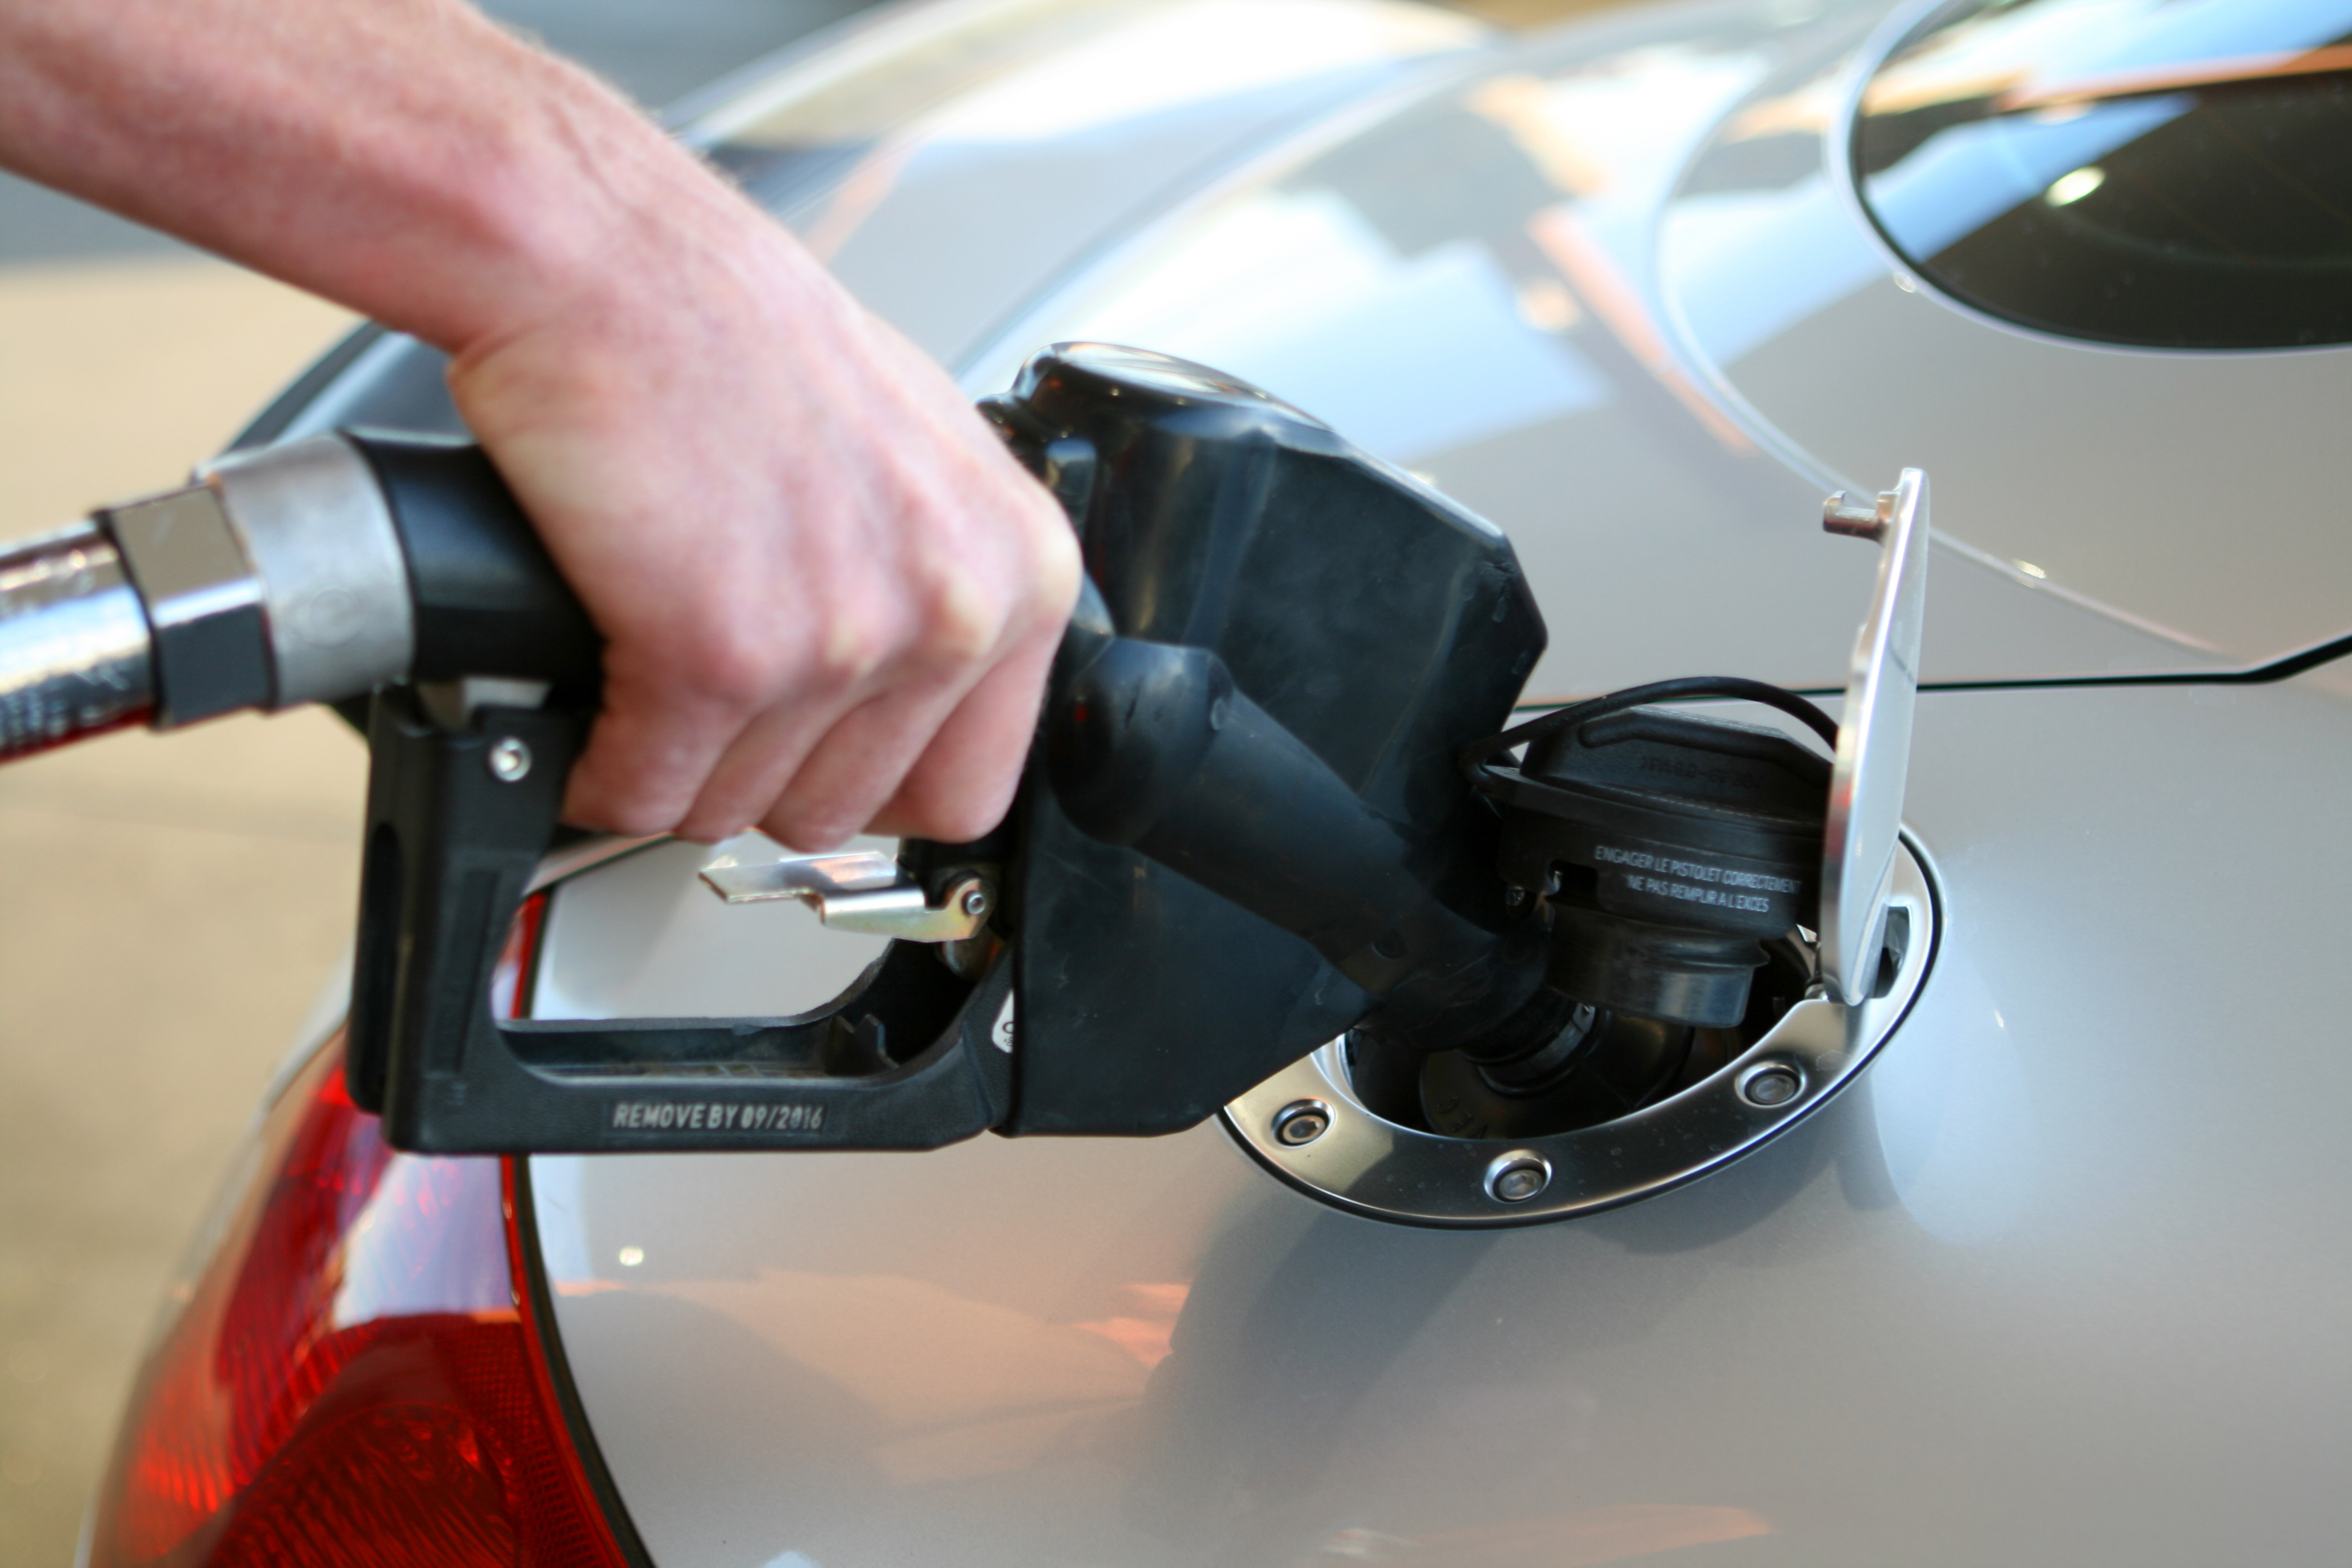 With many stations charging 116.1, Sudbury gas prices about the same as Sturgeon Falls and Espanola